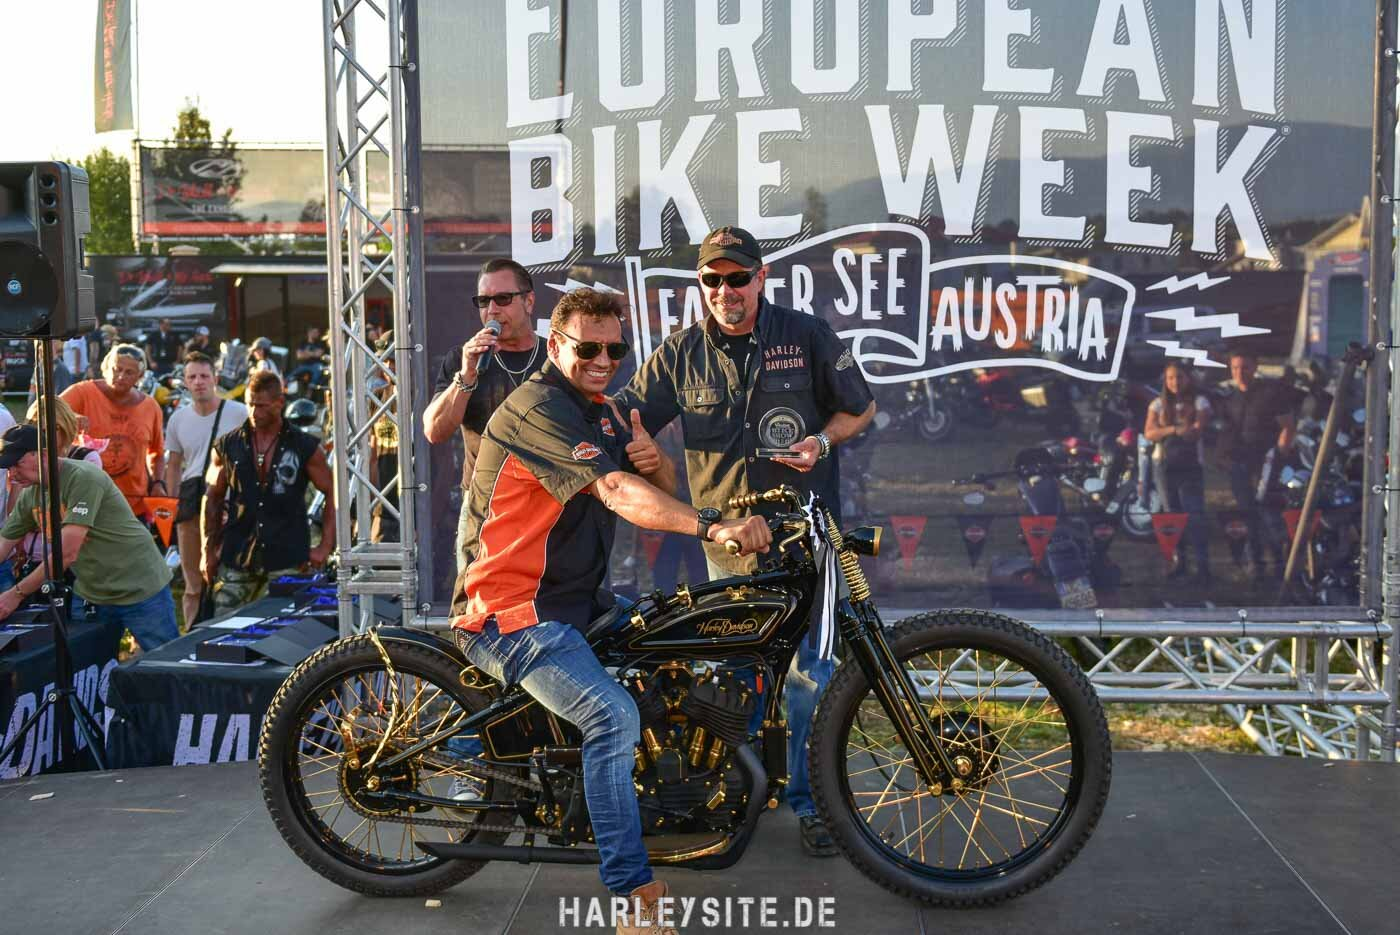 European-Bike-Week-0884